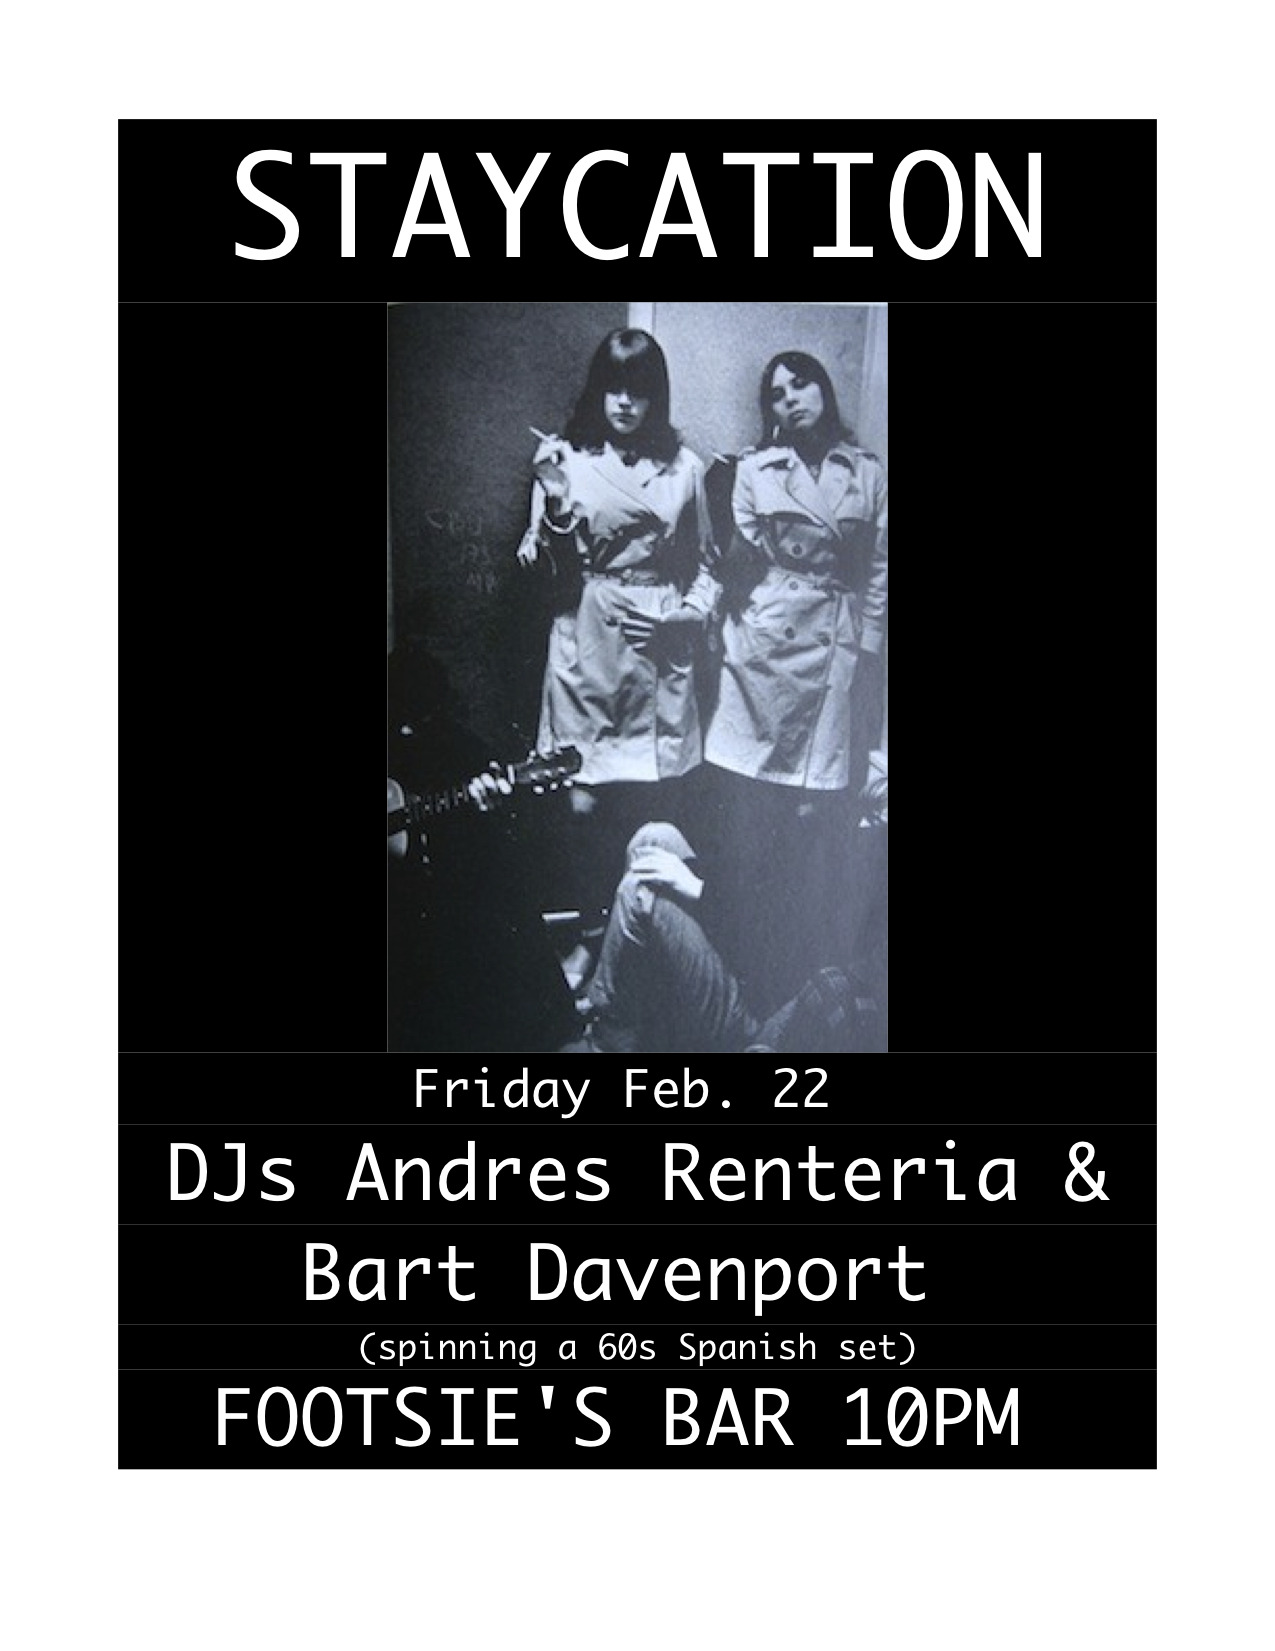 Tonight at Footsie's Bar in Los Angeles I'll be spinning records for my weekly Staycation.  Joining me is singer/songwriter Bart Davenport who will be spinning 60s Spanish rock.  I'll be spinning the usual mix of soul, psych, funky 45s, R&B, and international shakers.  10pm-2am!!!!